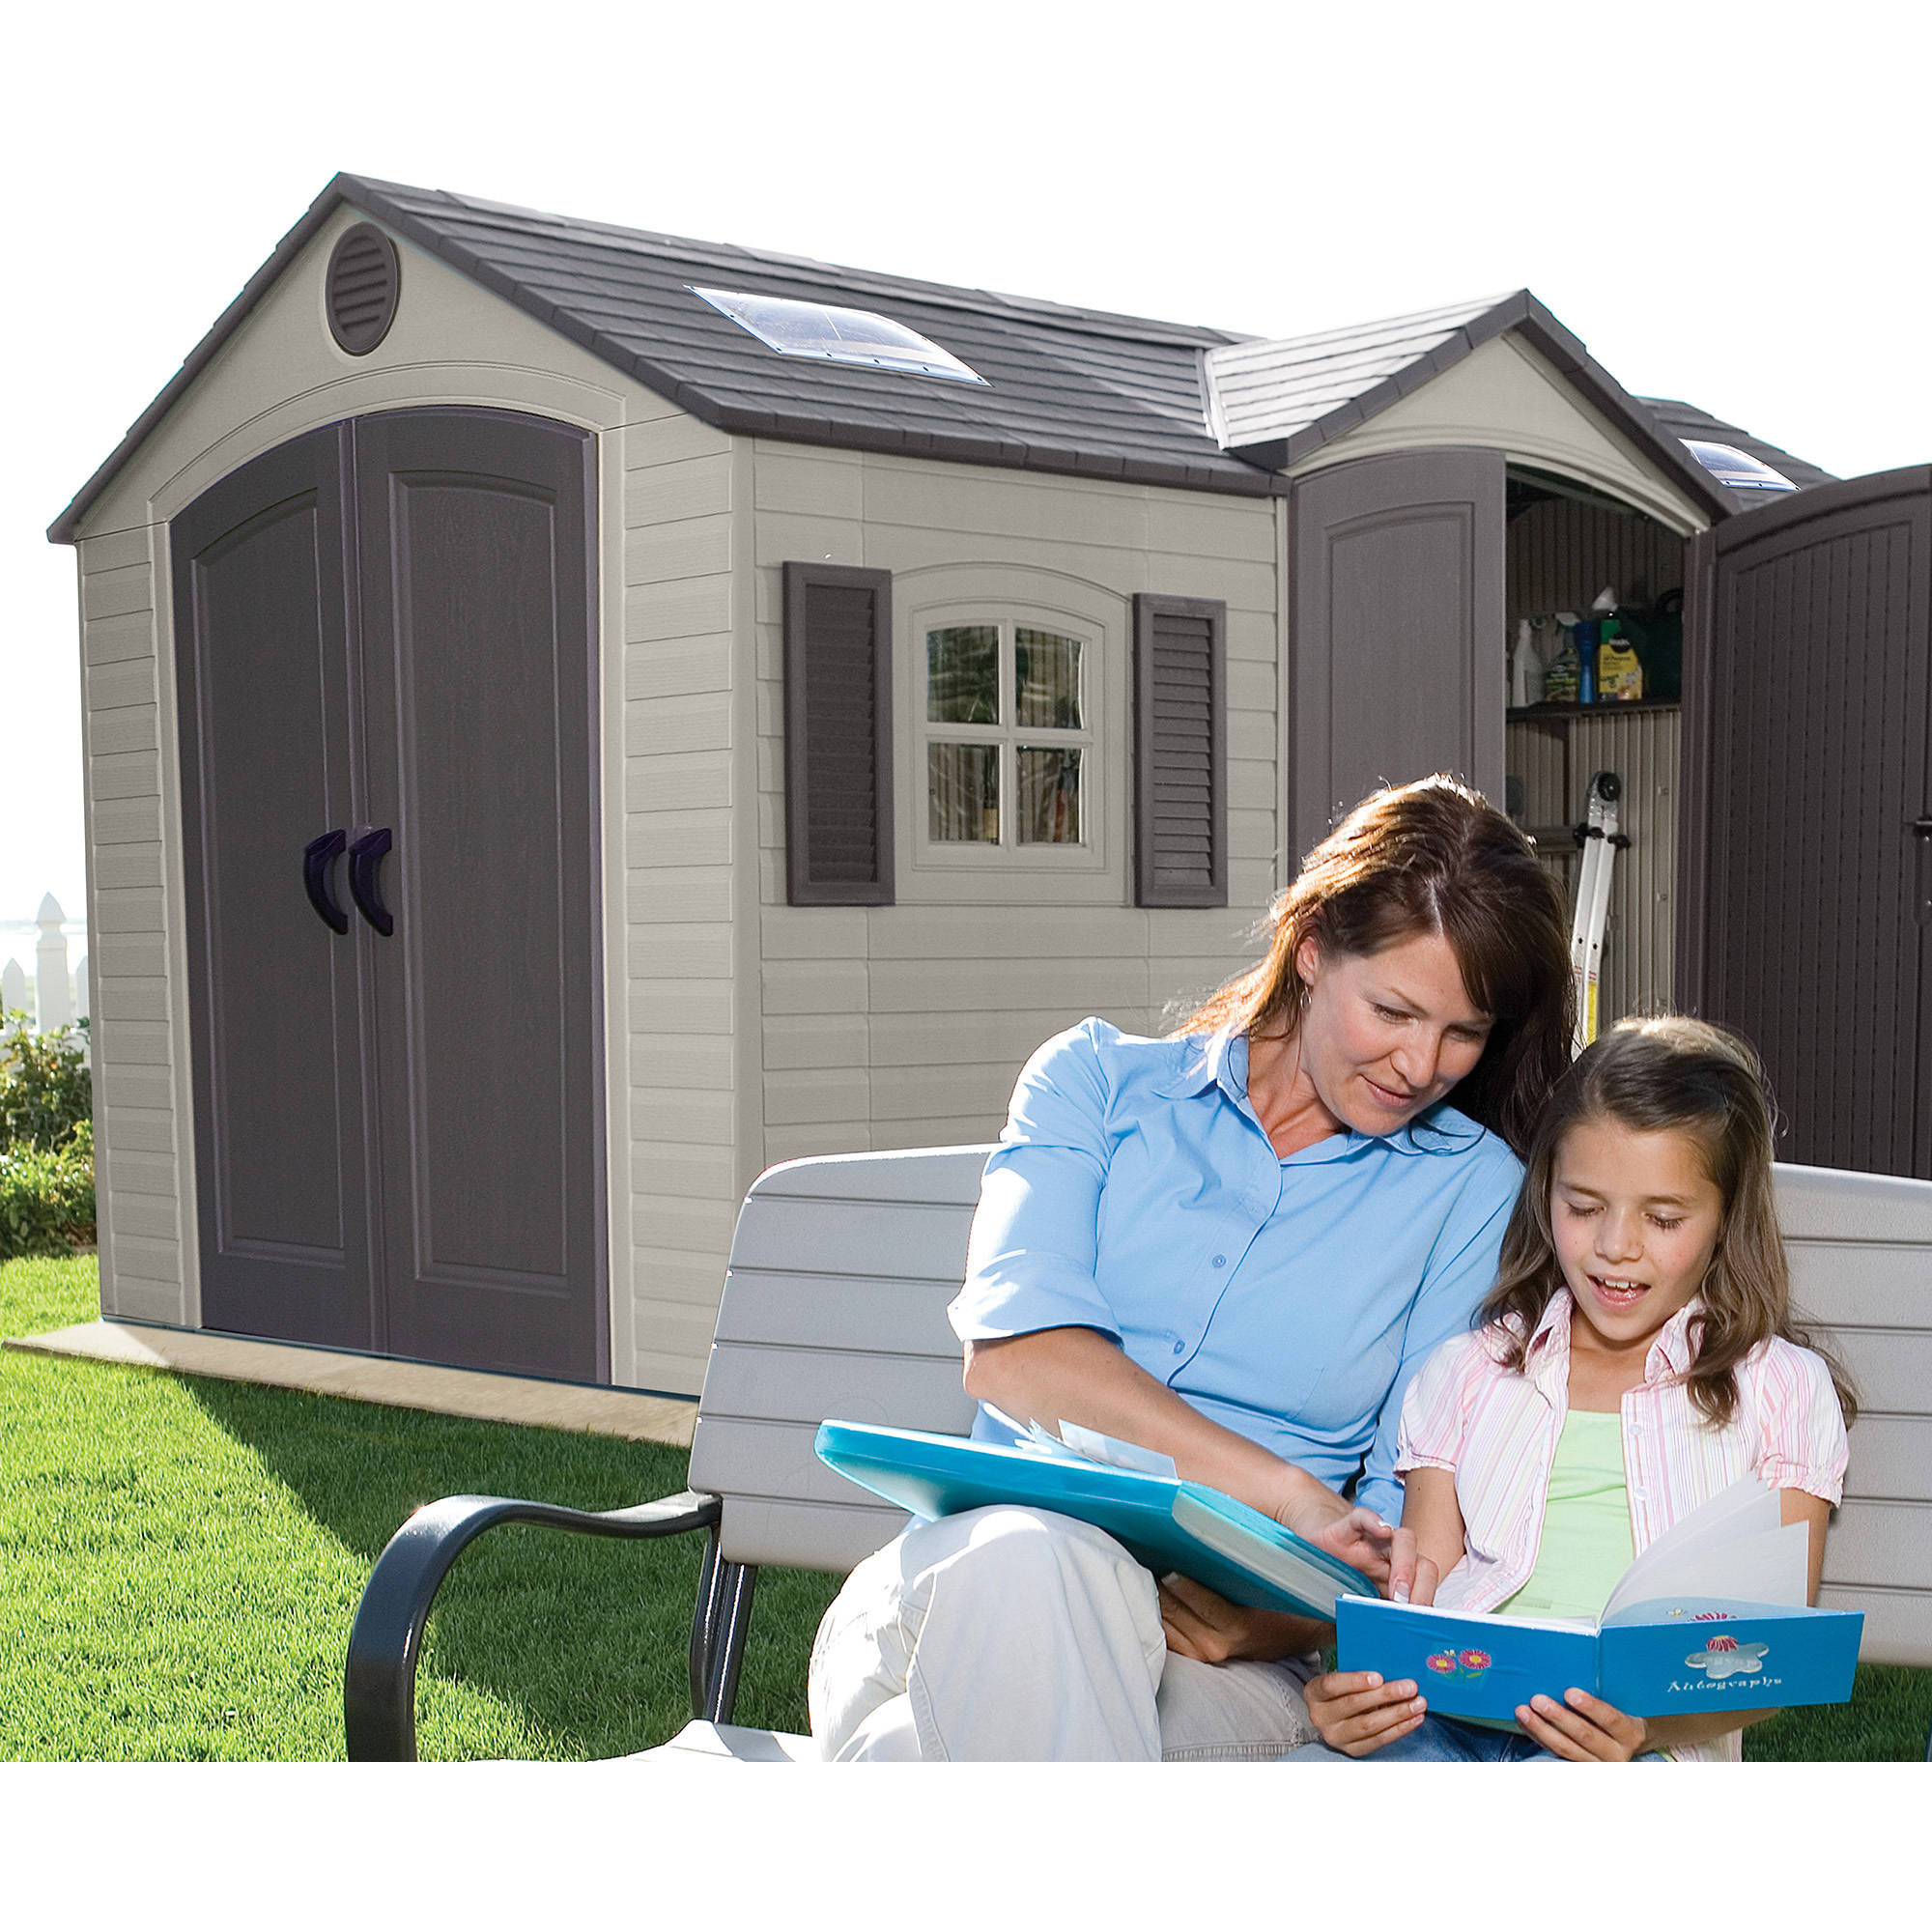 shed w wayfair products d sheds garden mercia reviews overlap co ft wooden apex pdp uk x storage